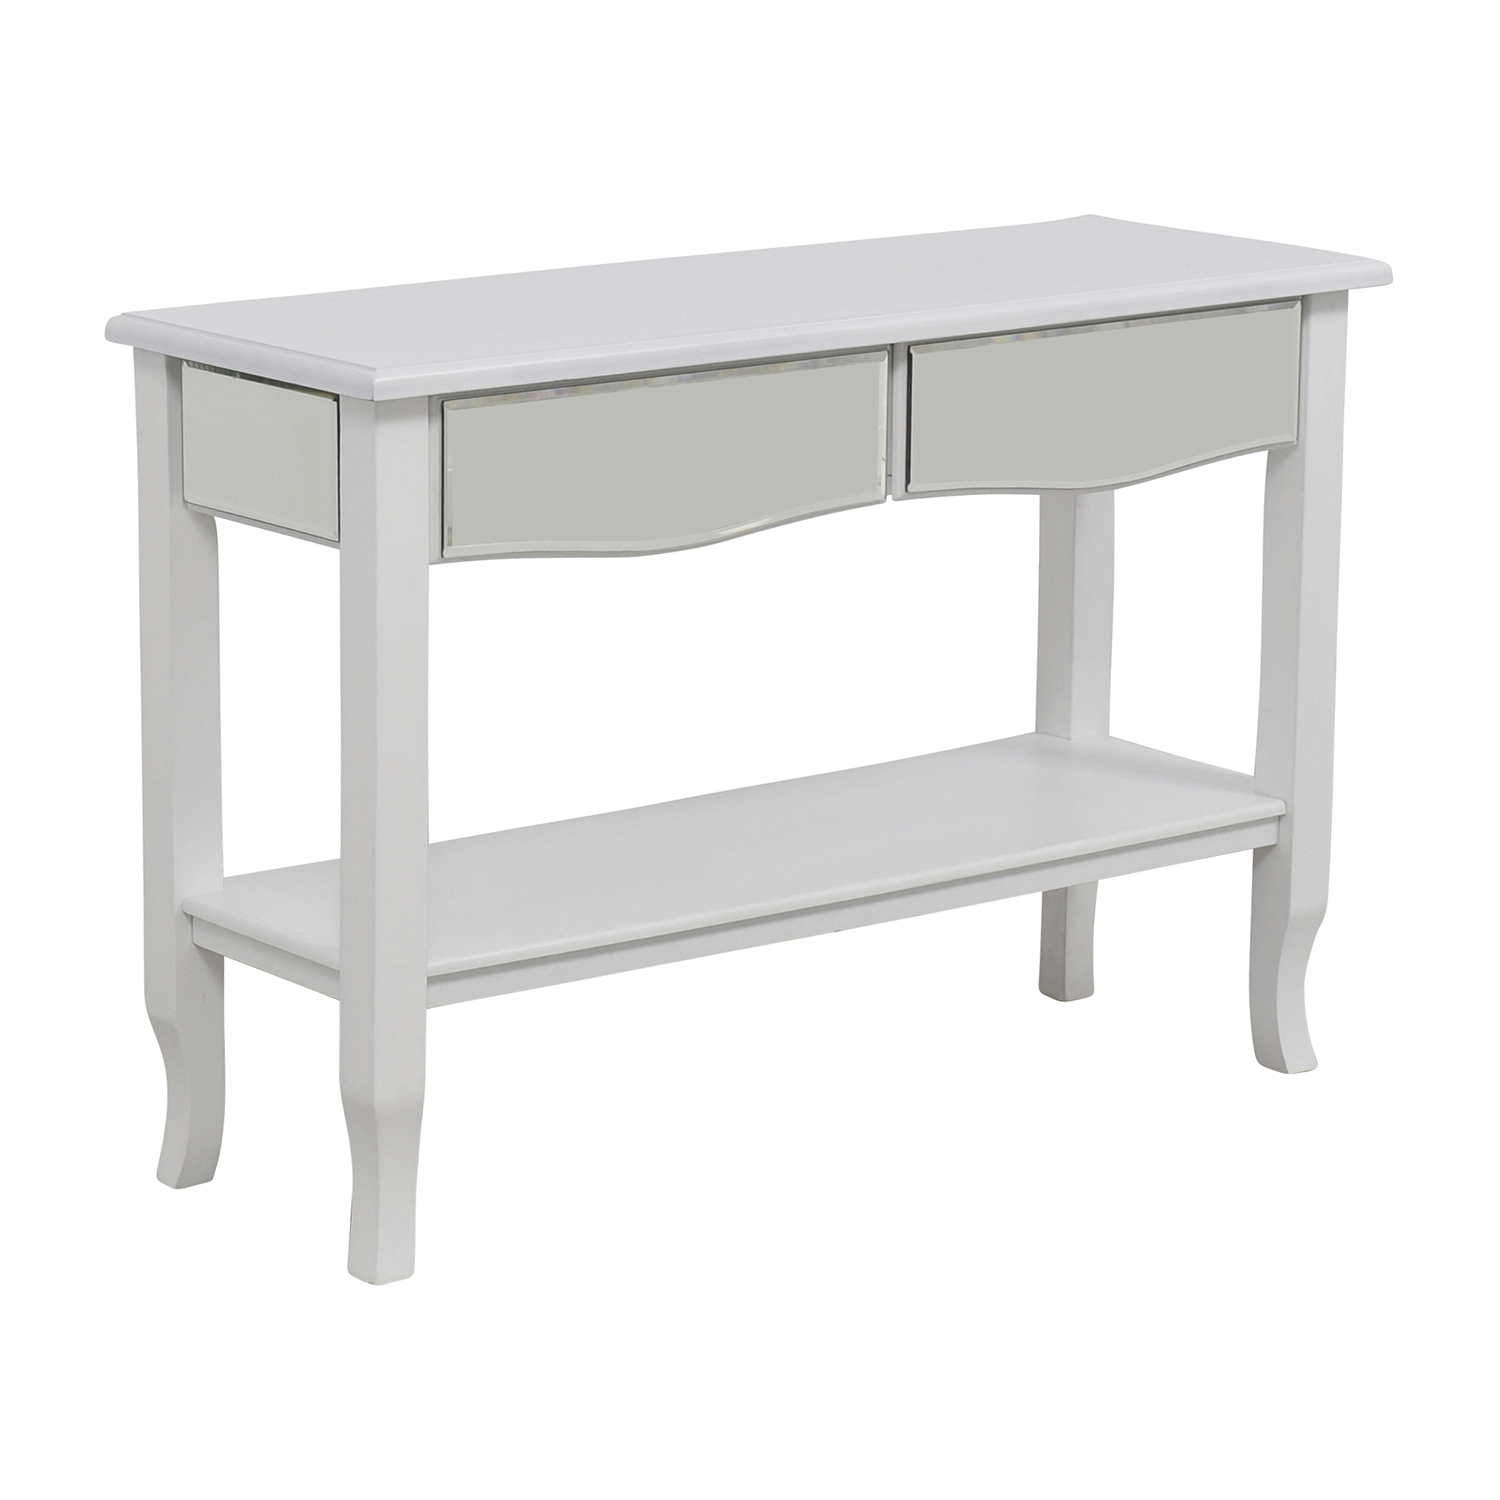 85 off white mirrored console table with two drawers for Mirrored console with drawers